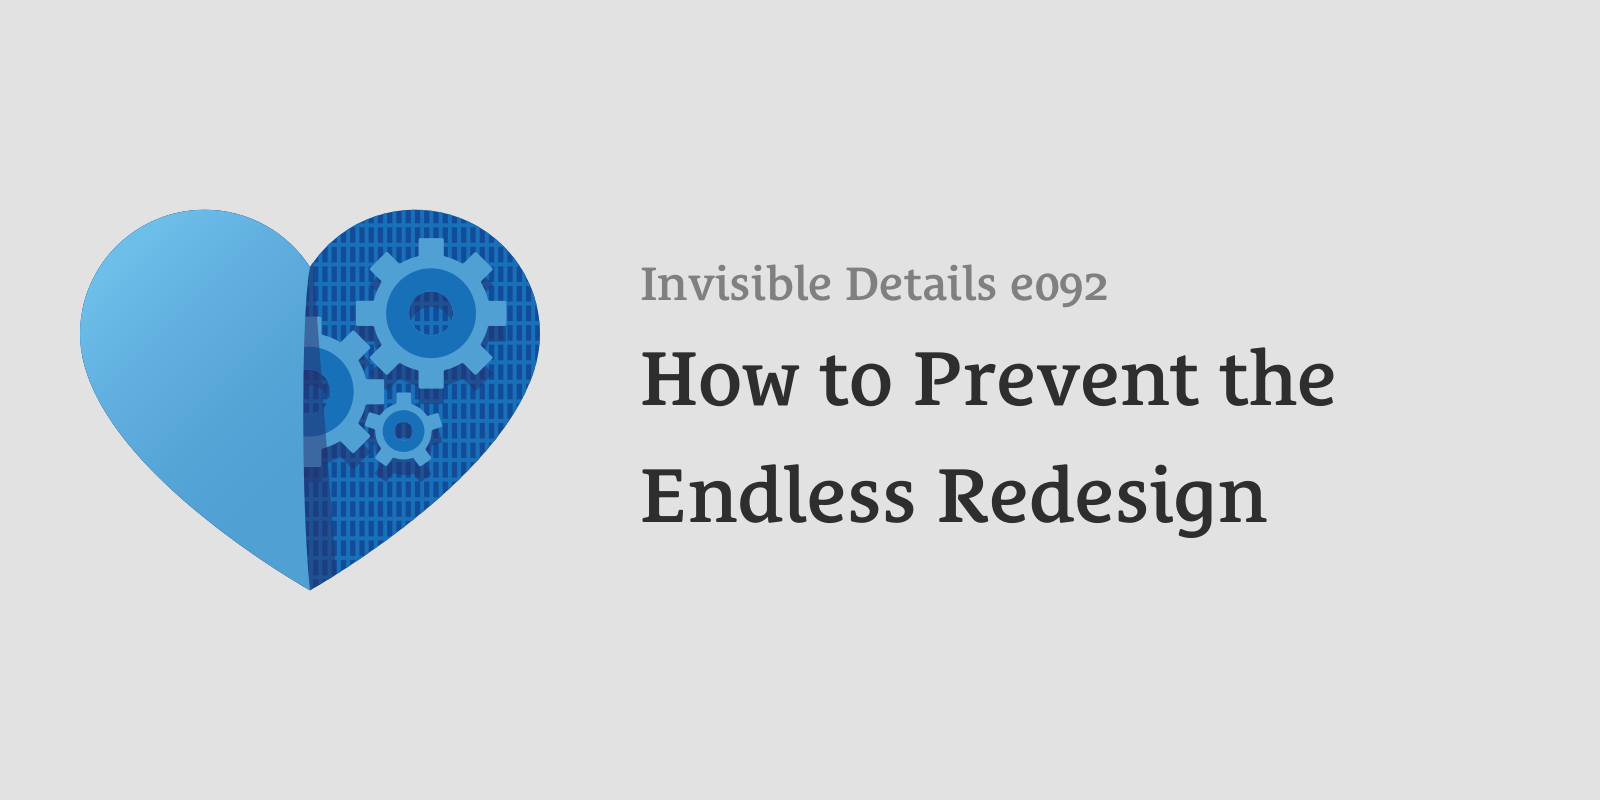 Invisible Details 92: How to Prevent the Endless Redesign